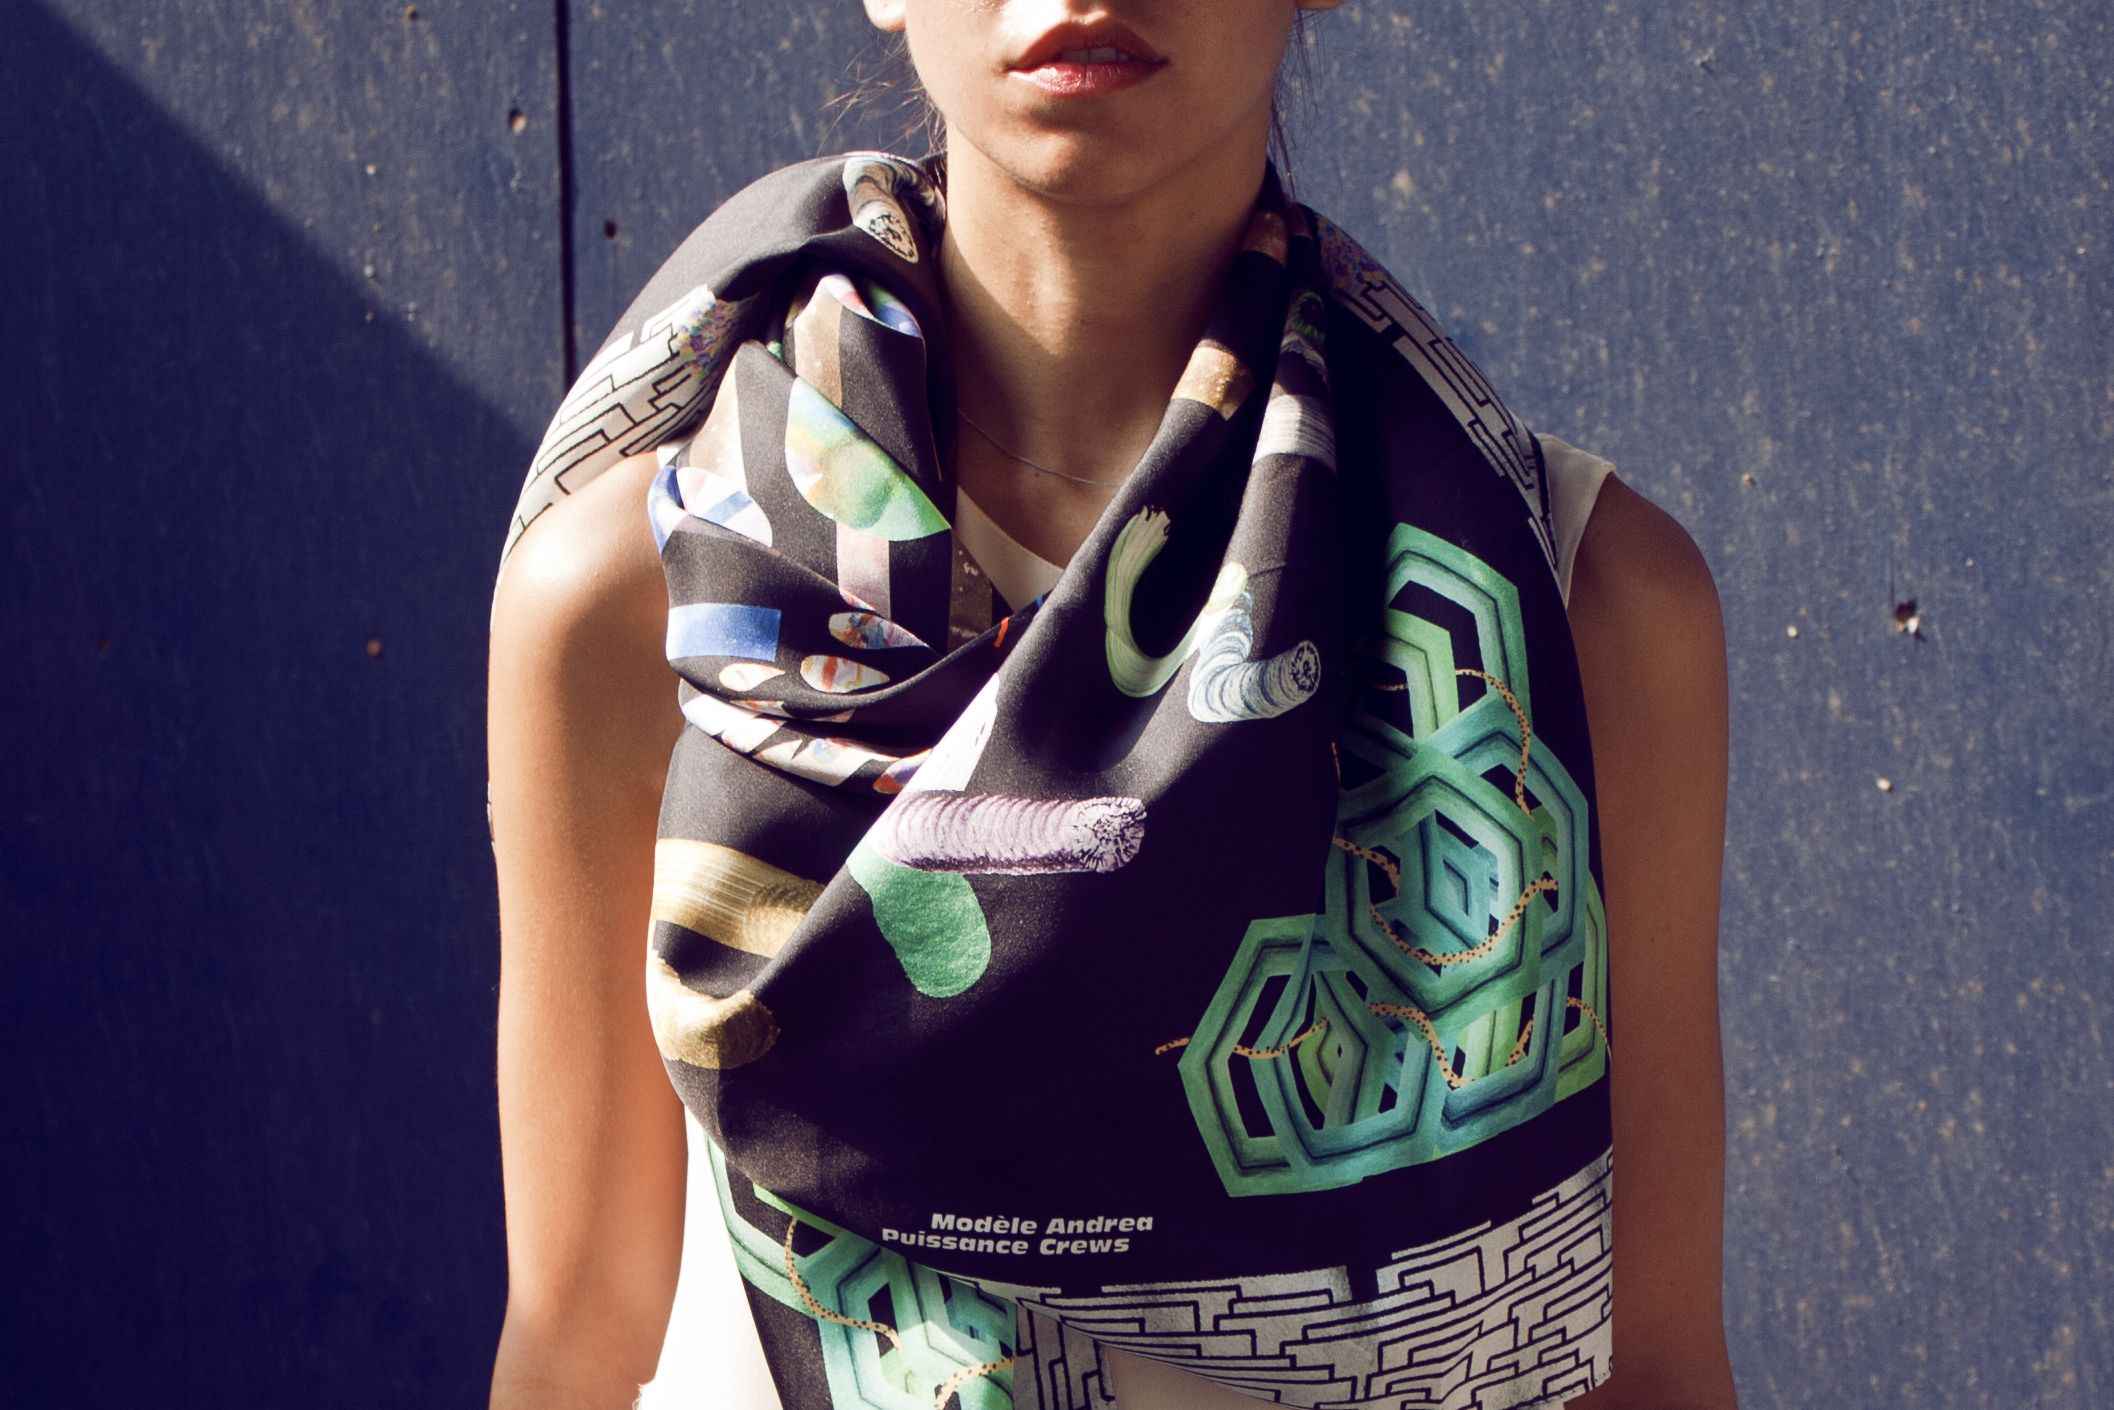 Fancy - Andrea Crews Modele Puissance Green Scarf